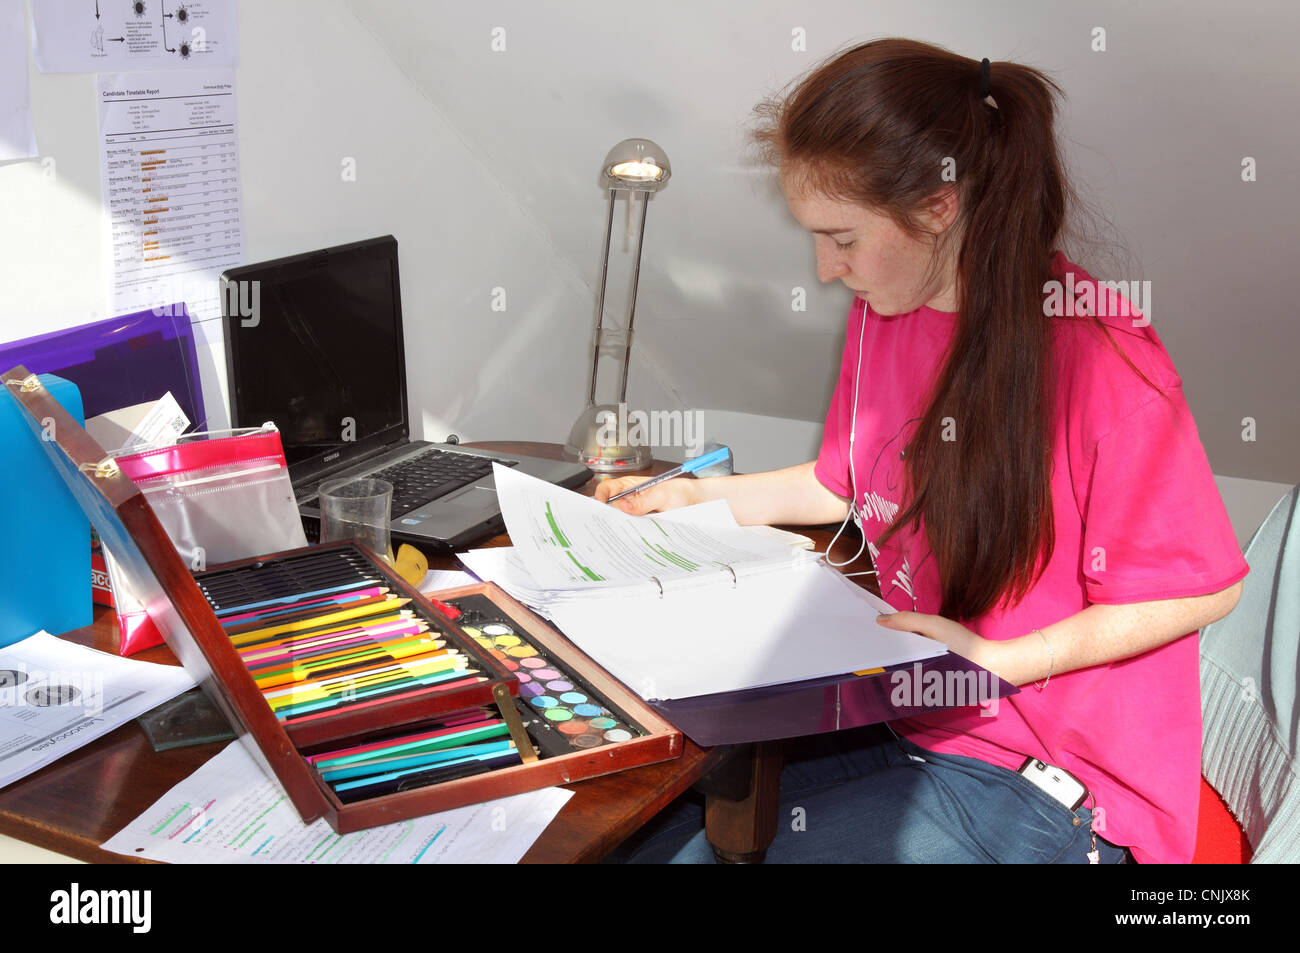 Student revising for exams. - Stock Image